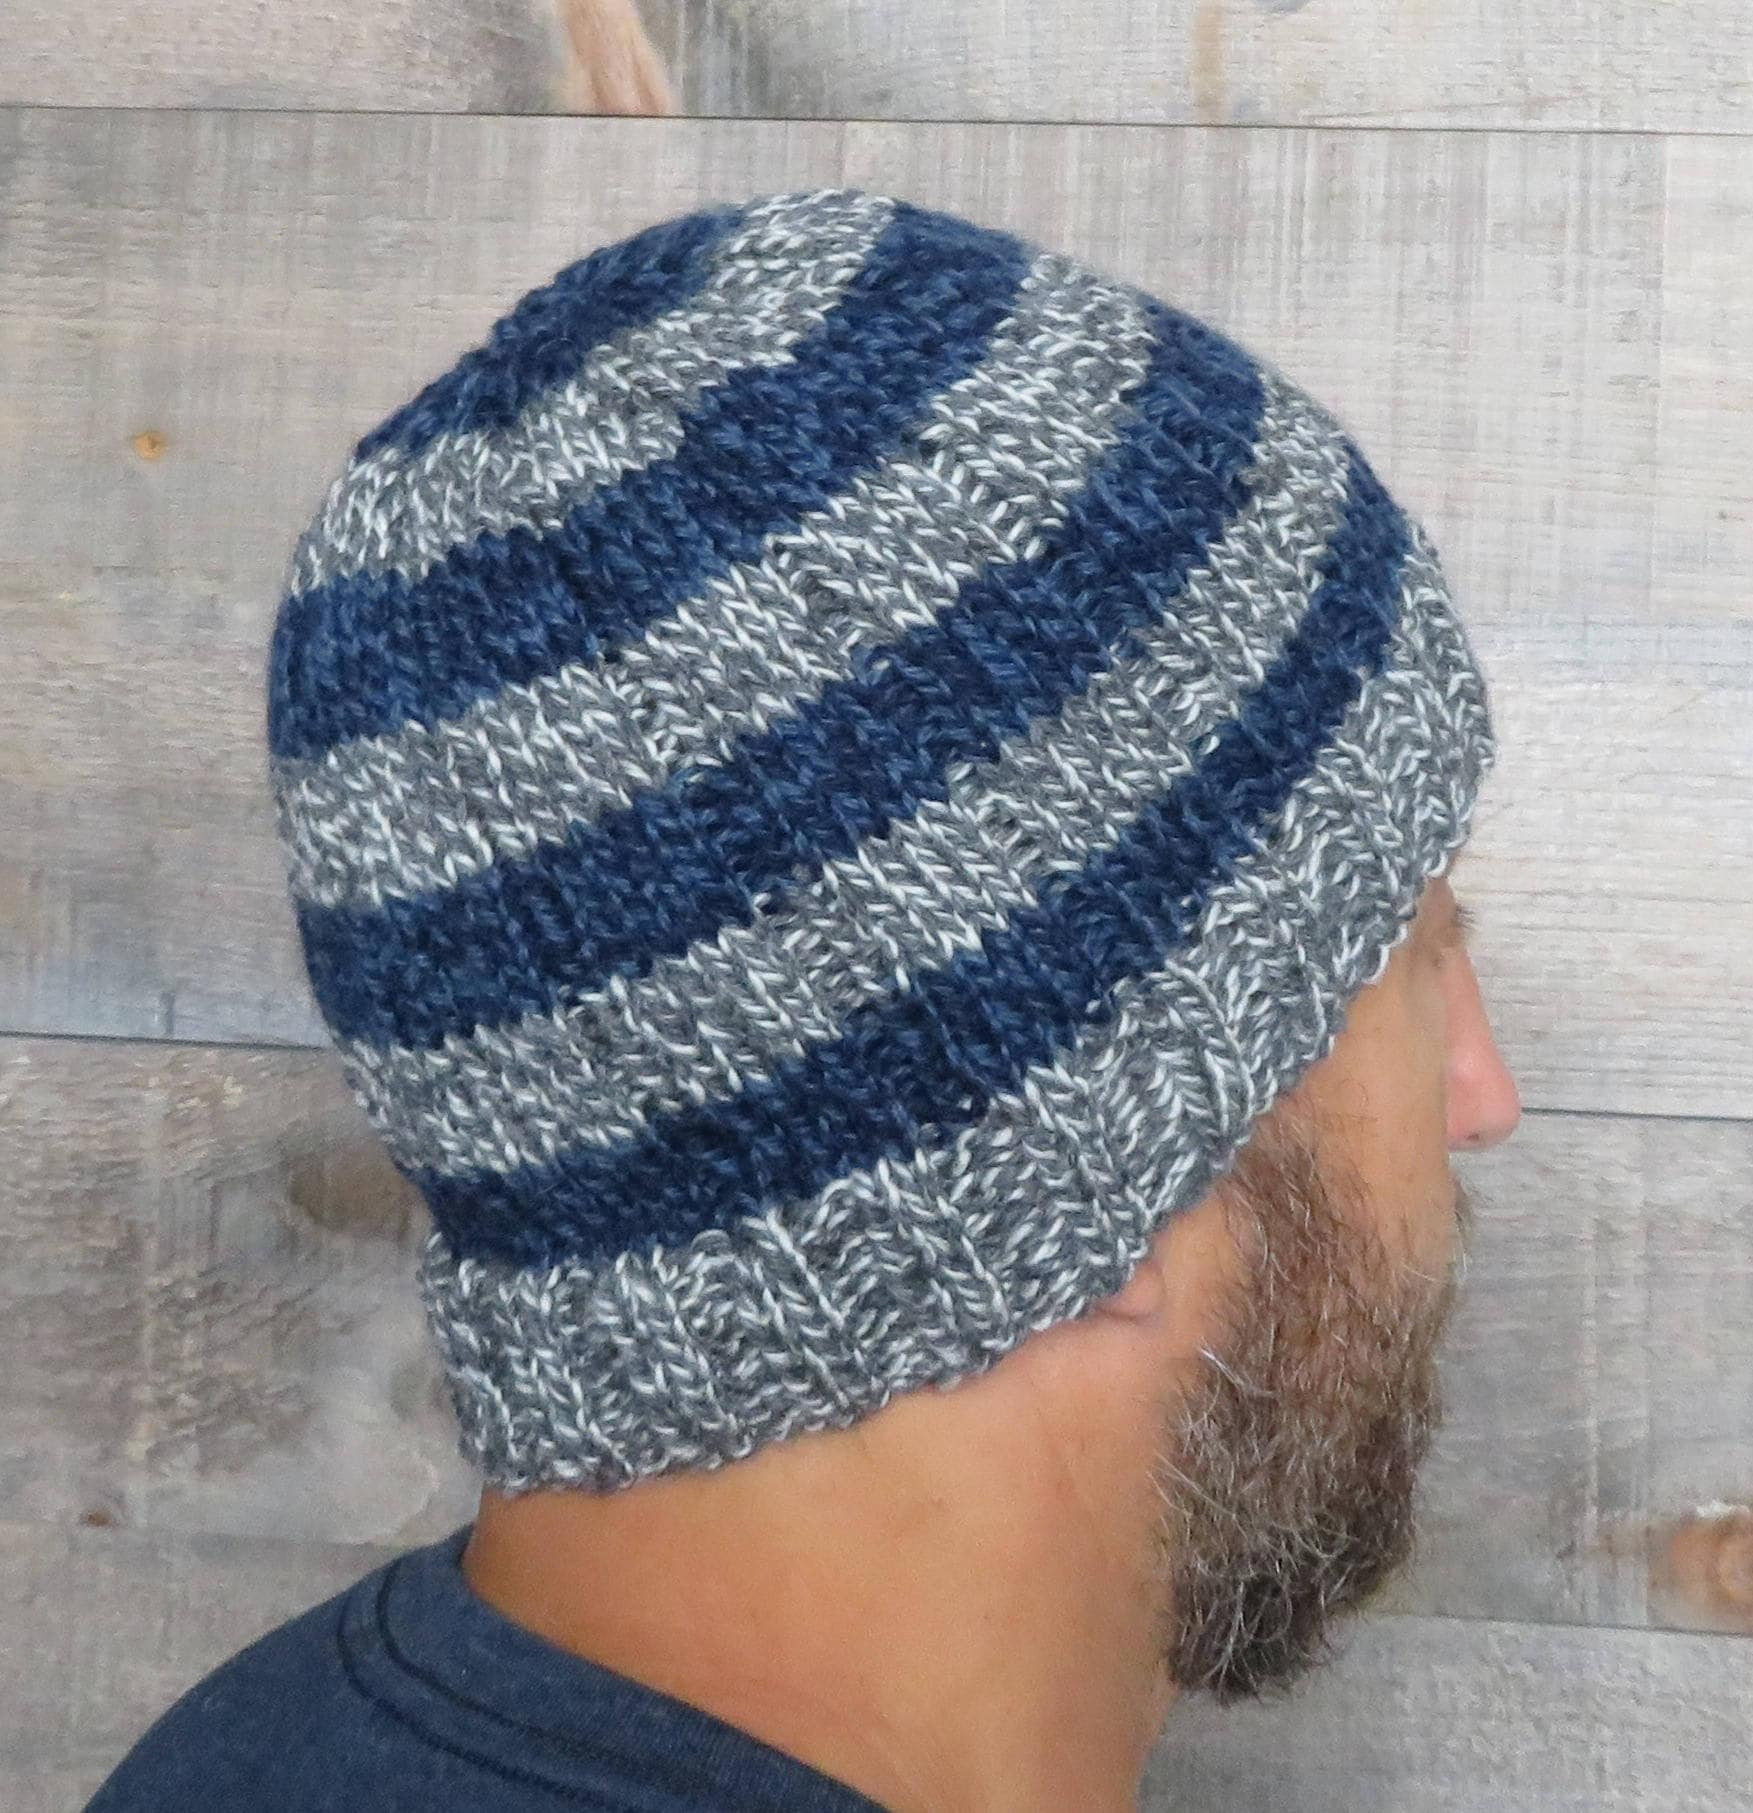 KNITTING PATTERN - Easy Striped Beanie, easy knitting pattern ...